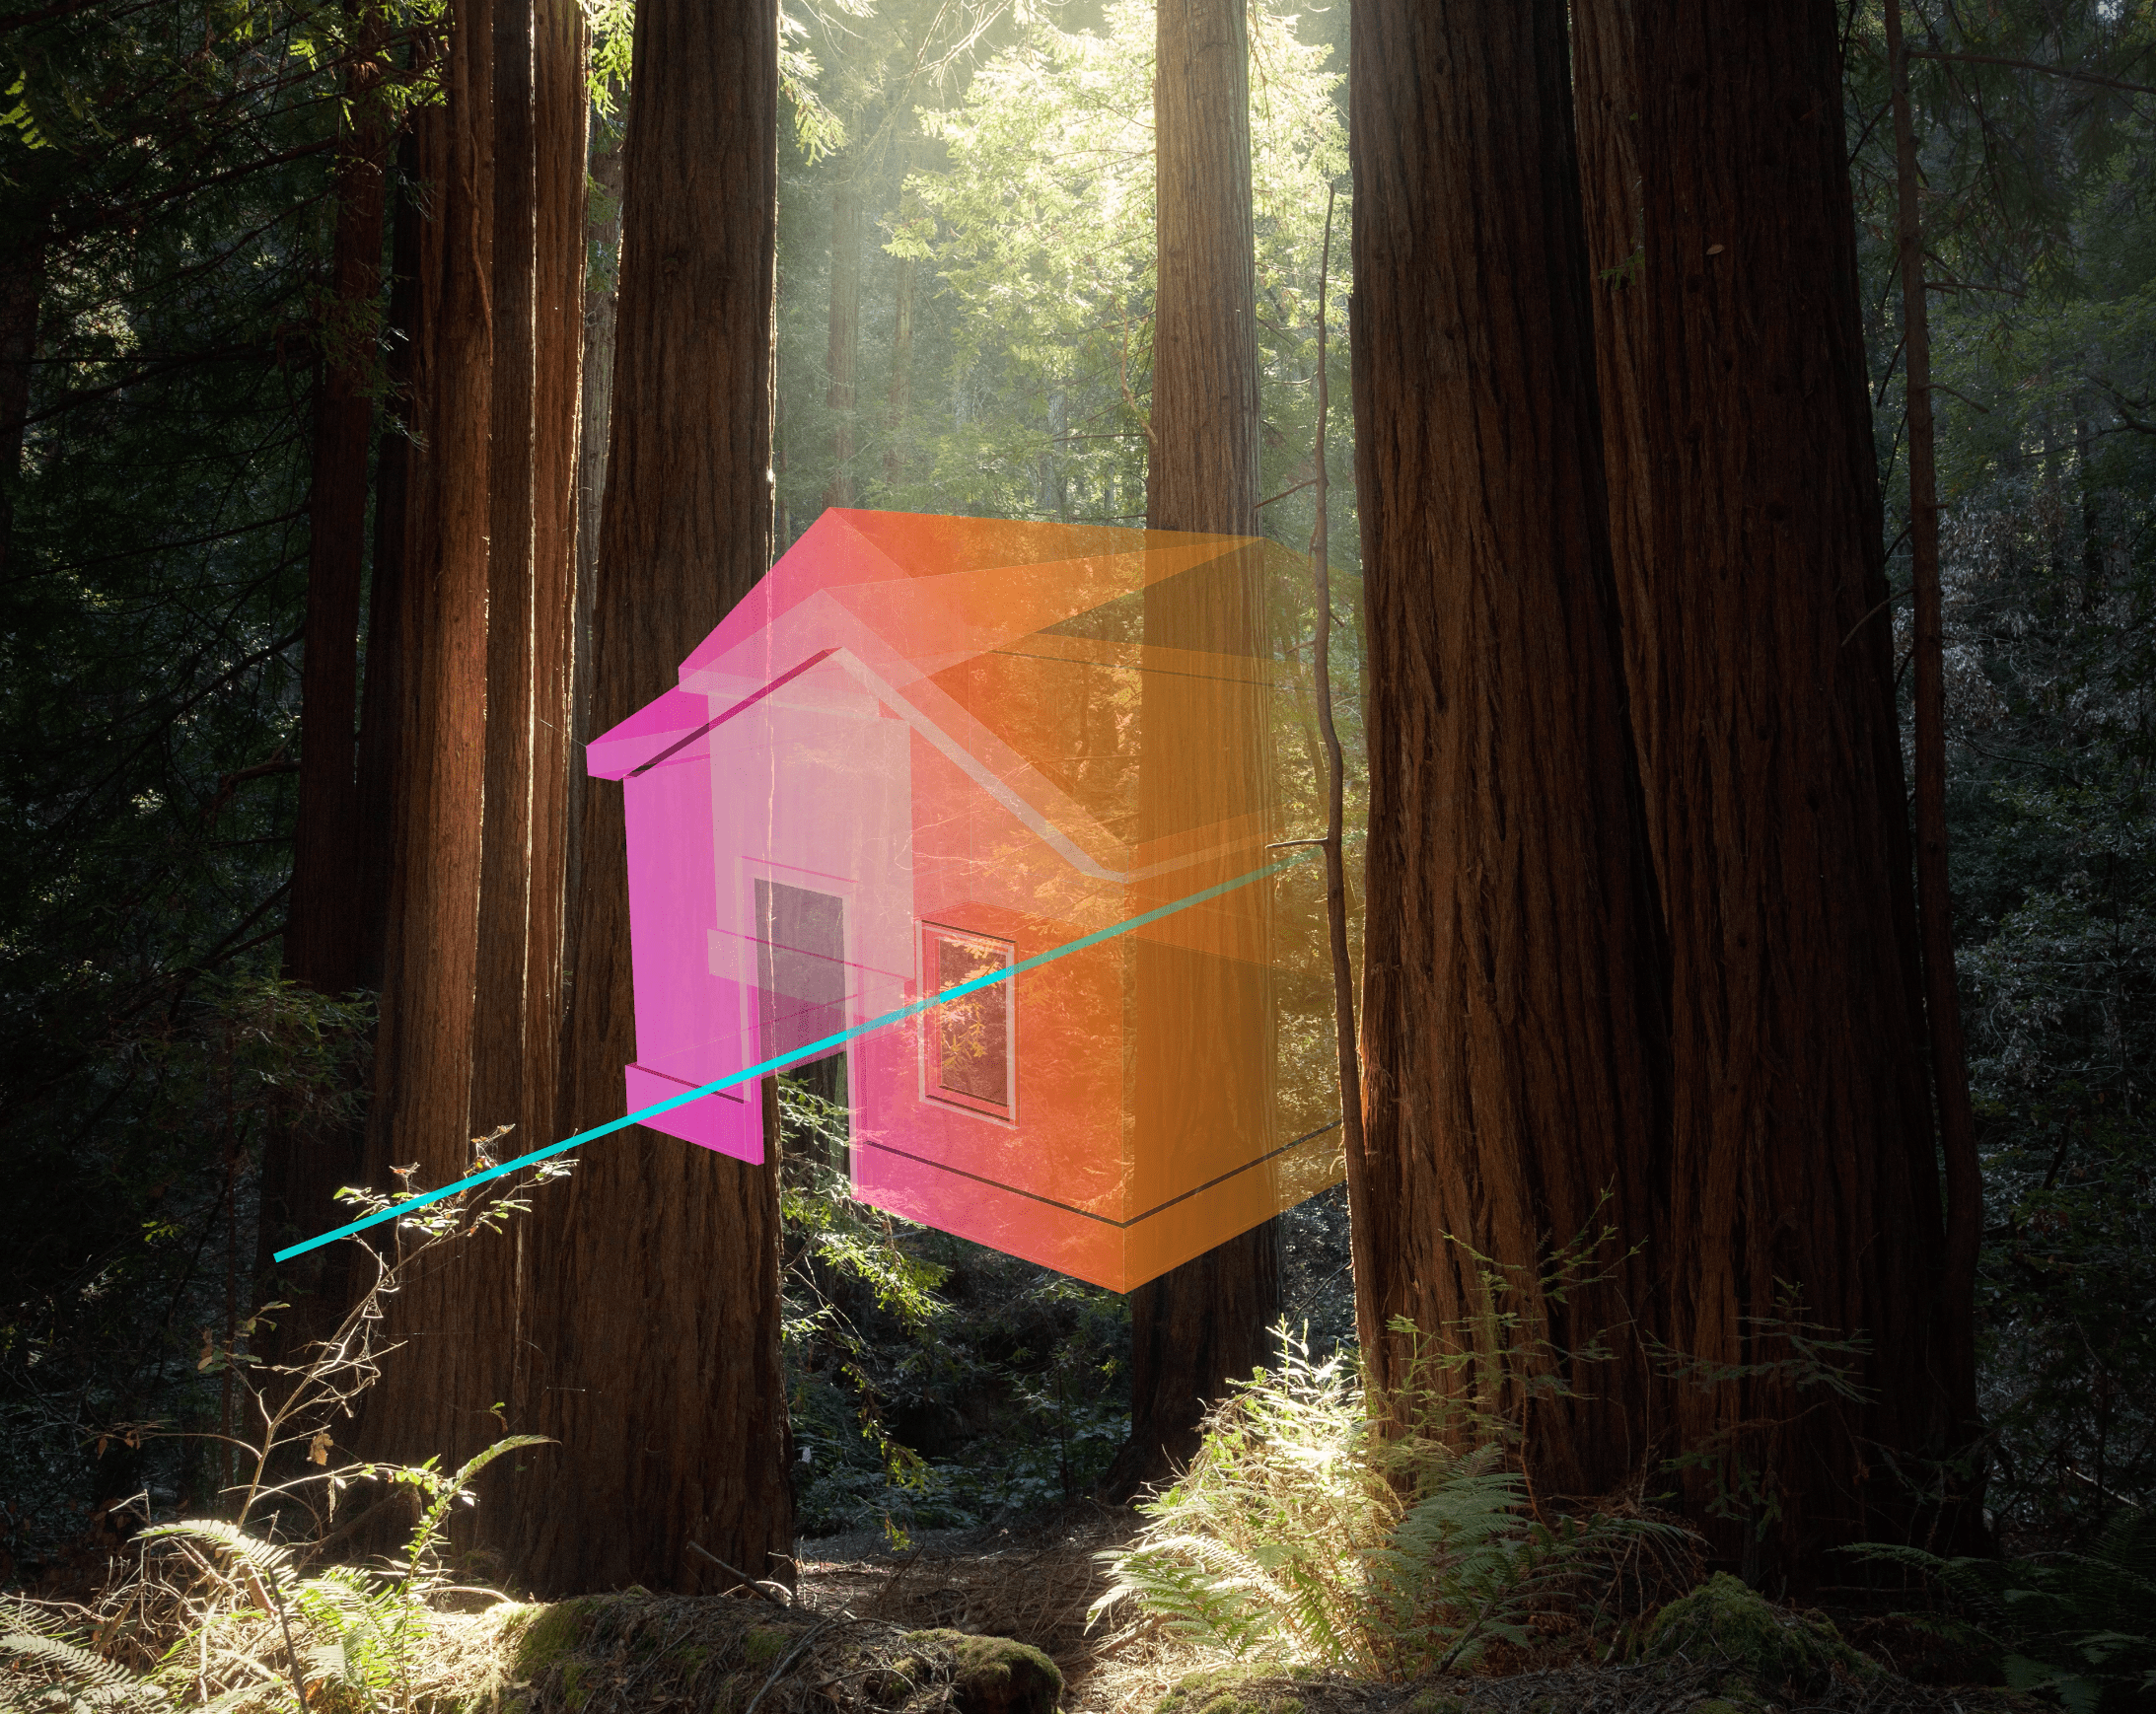 Rainbow holographic house floating in the woods with a blue beam running through the center.